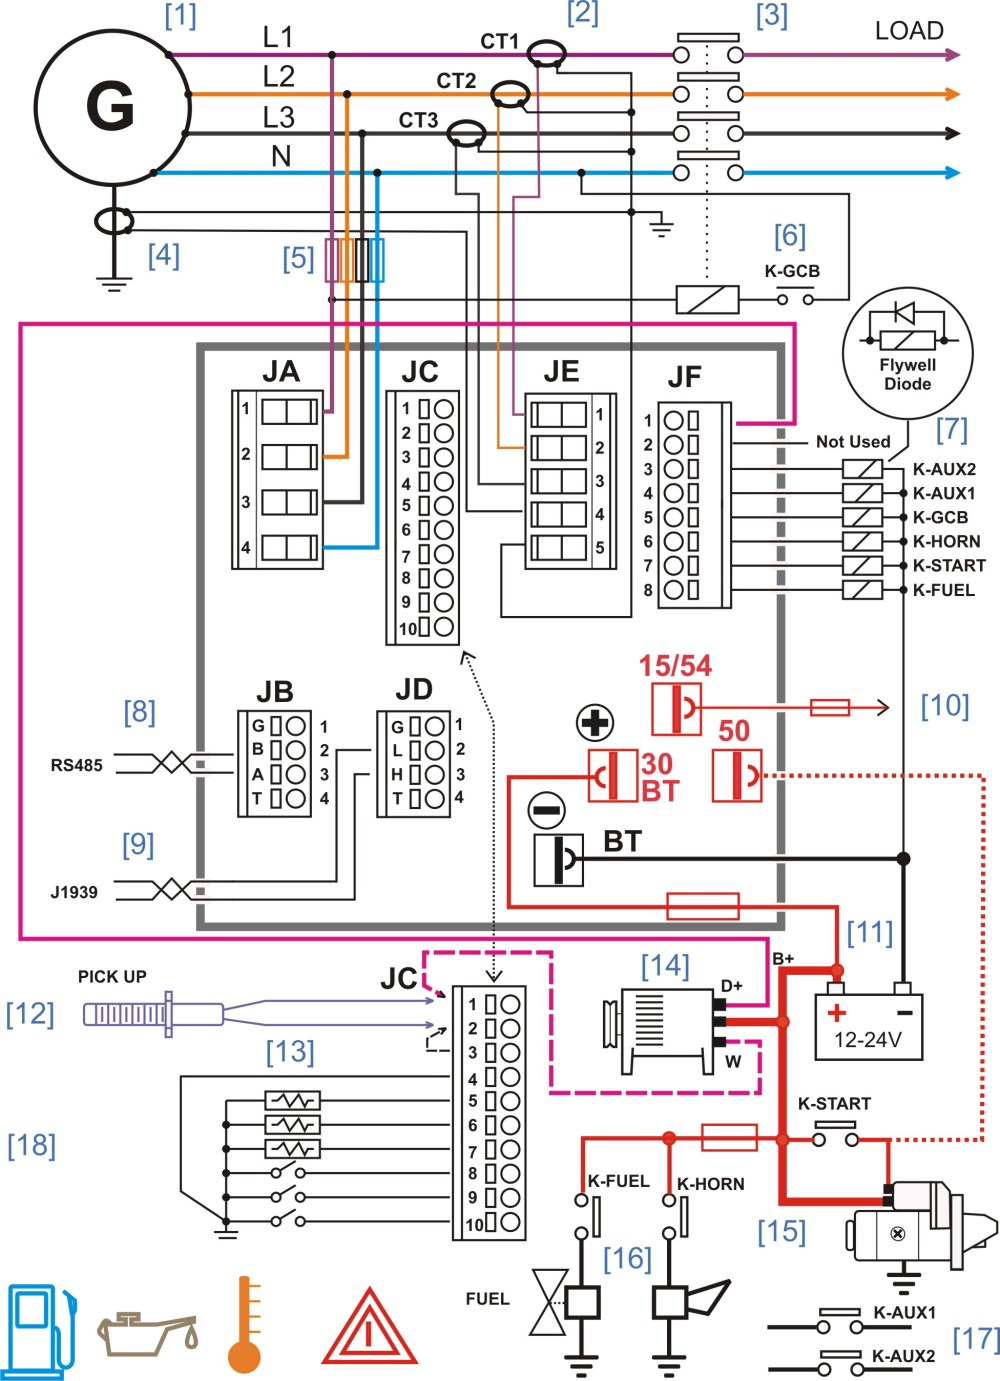 medium resolution of wiring diagram of ats panel for generator blog wiring diagram electrical wiring diagram design software free electrical wiring diagram generator